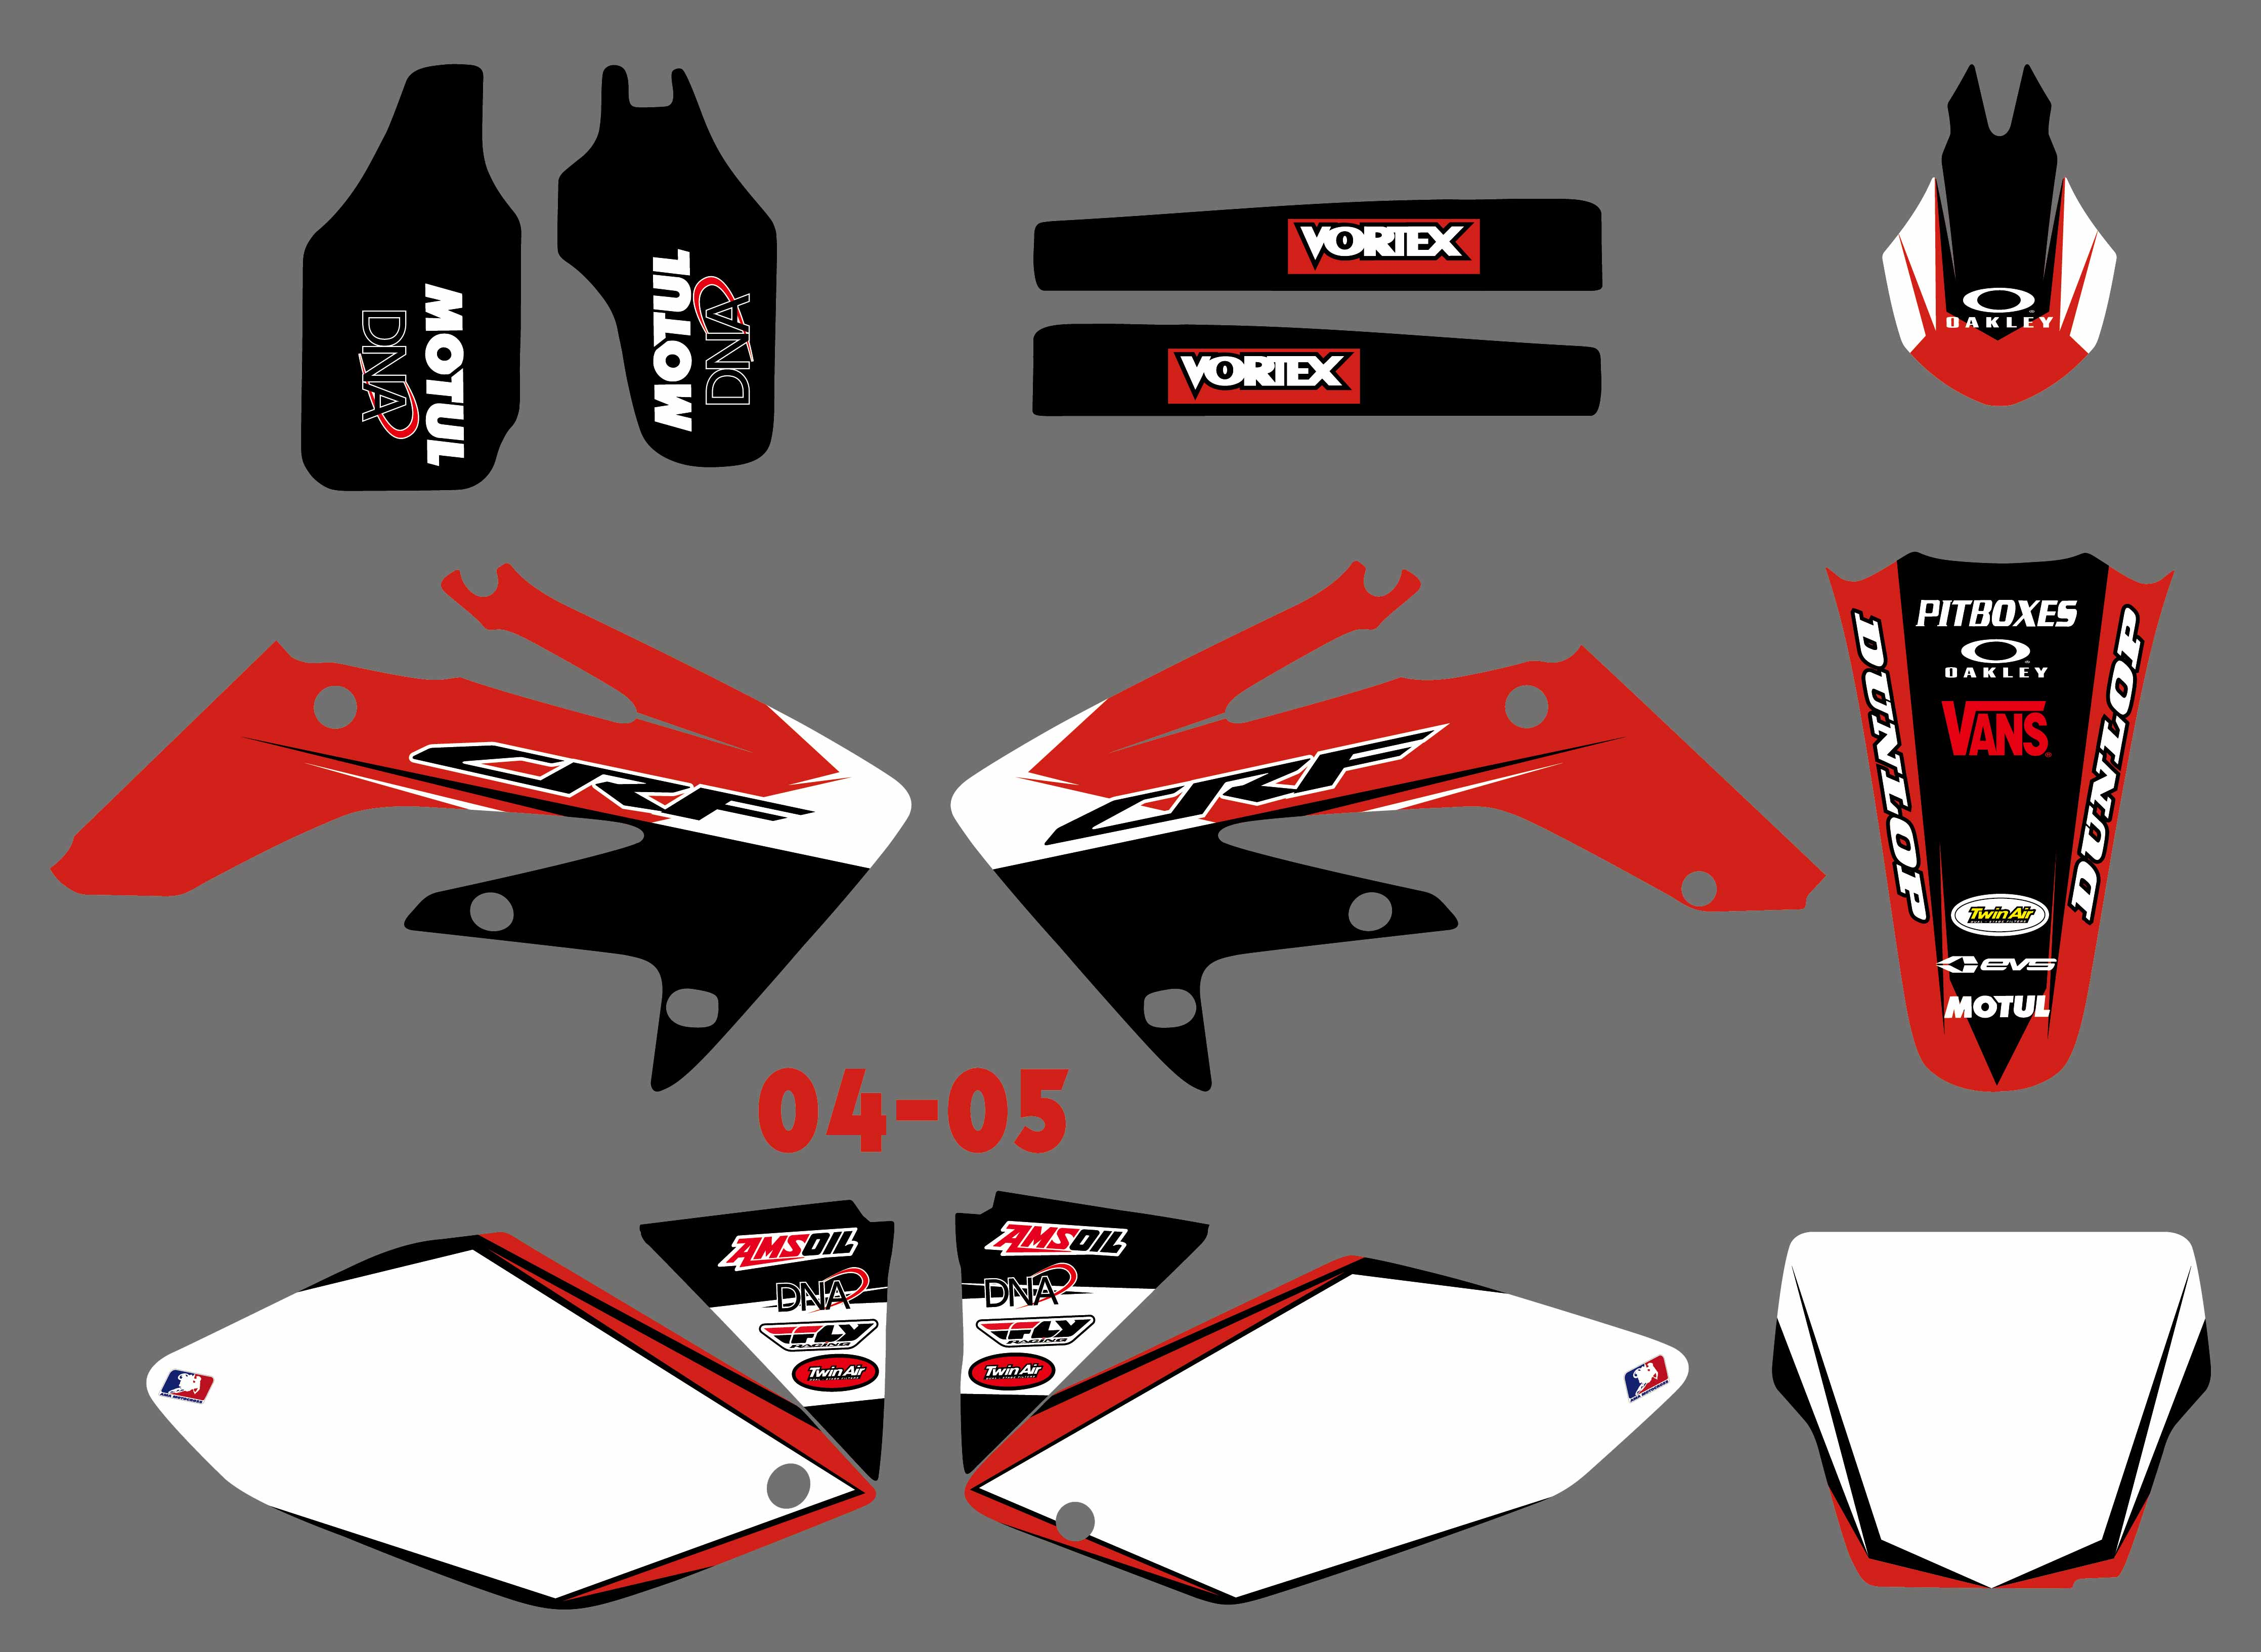 New Style TEAM GRAPHICS & BACKGROUNDS DECALS STICKERS Kits For Honda CRF250 CRF250R 2004 2005 2006 2007 2008 2009 CRF 250 250R for honda crf 250r 450r 2004 2006 crf 250x 450x 2004 2015 red motorcycle dirt bike off road cnc pivot brake clutch lever